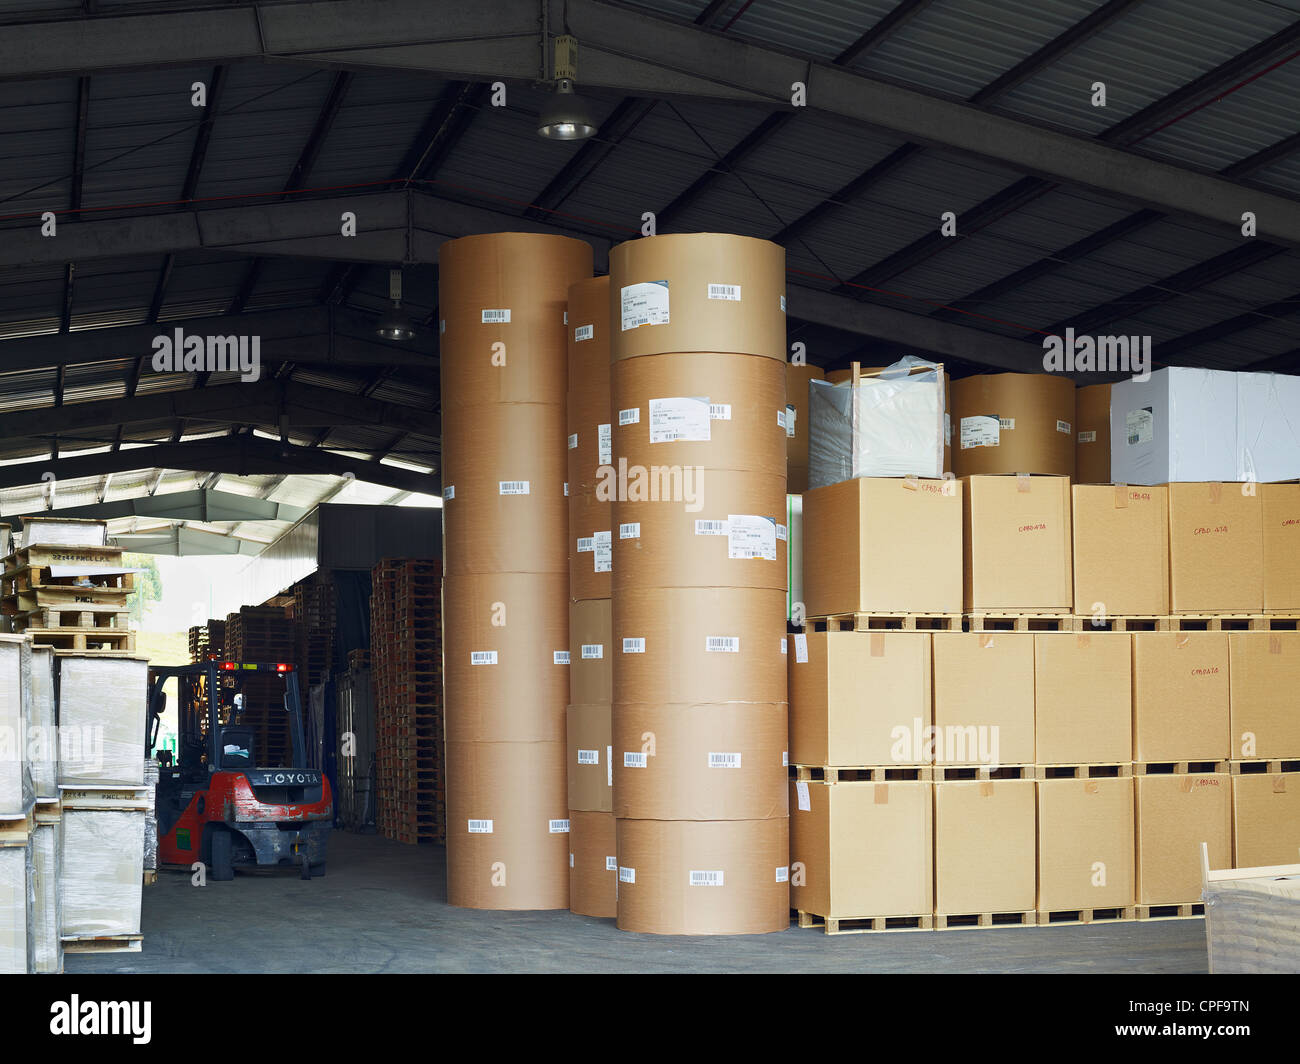 Stacked palettes and cardboard containers at a printing press in Malaysia. April 28, 2011. - Stock Image